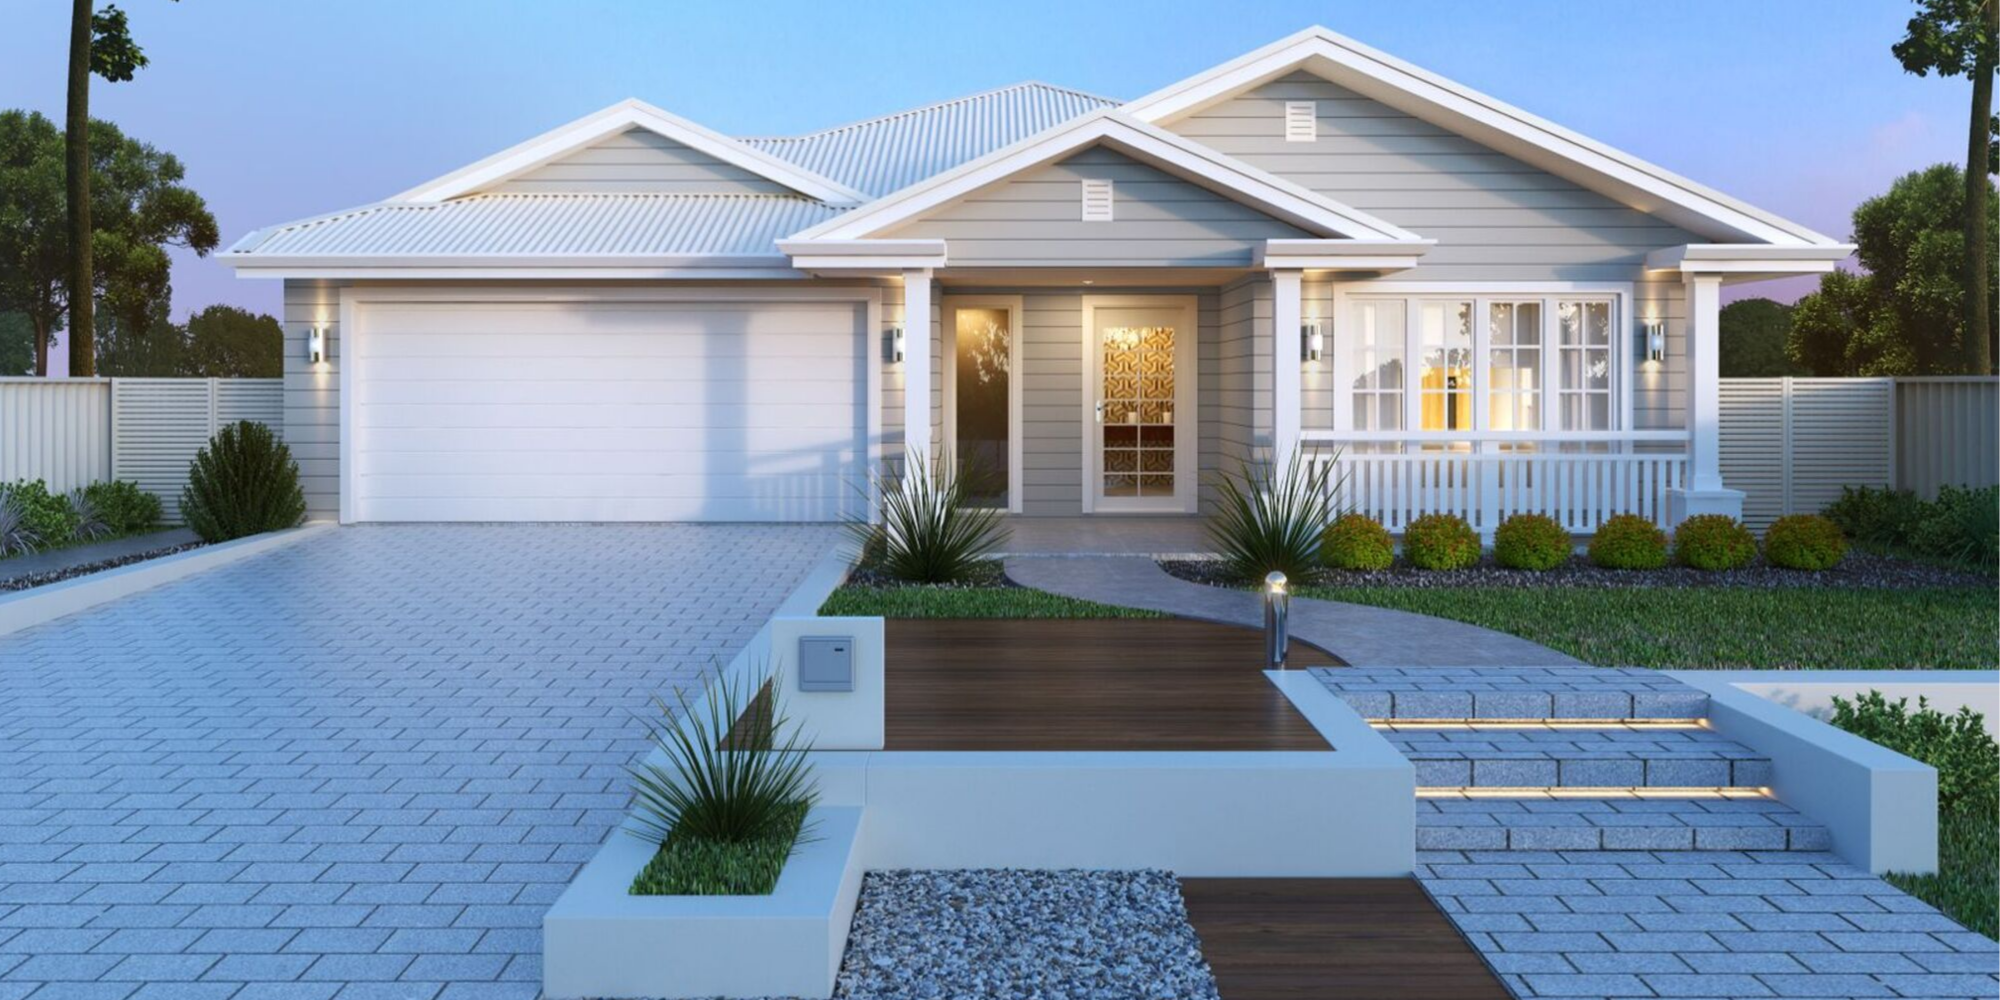 The Best New Home Builders in Brisbane: Don't Compromise on Your New Home